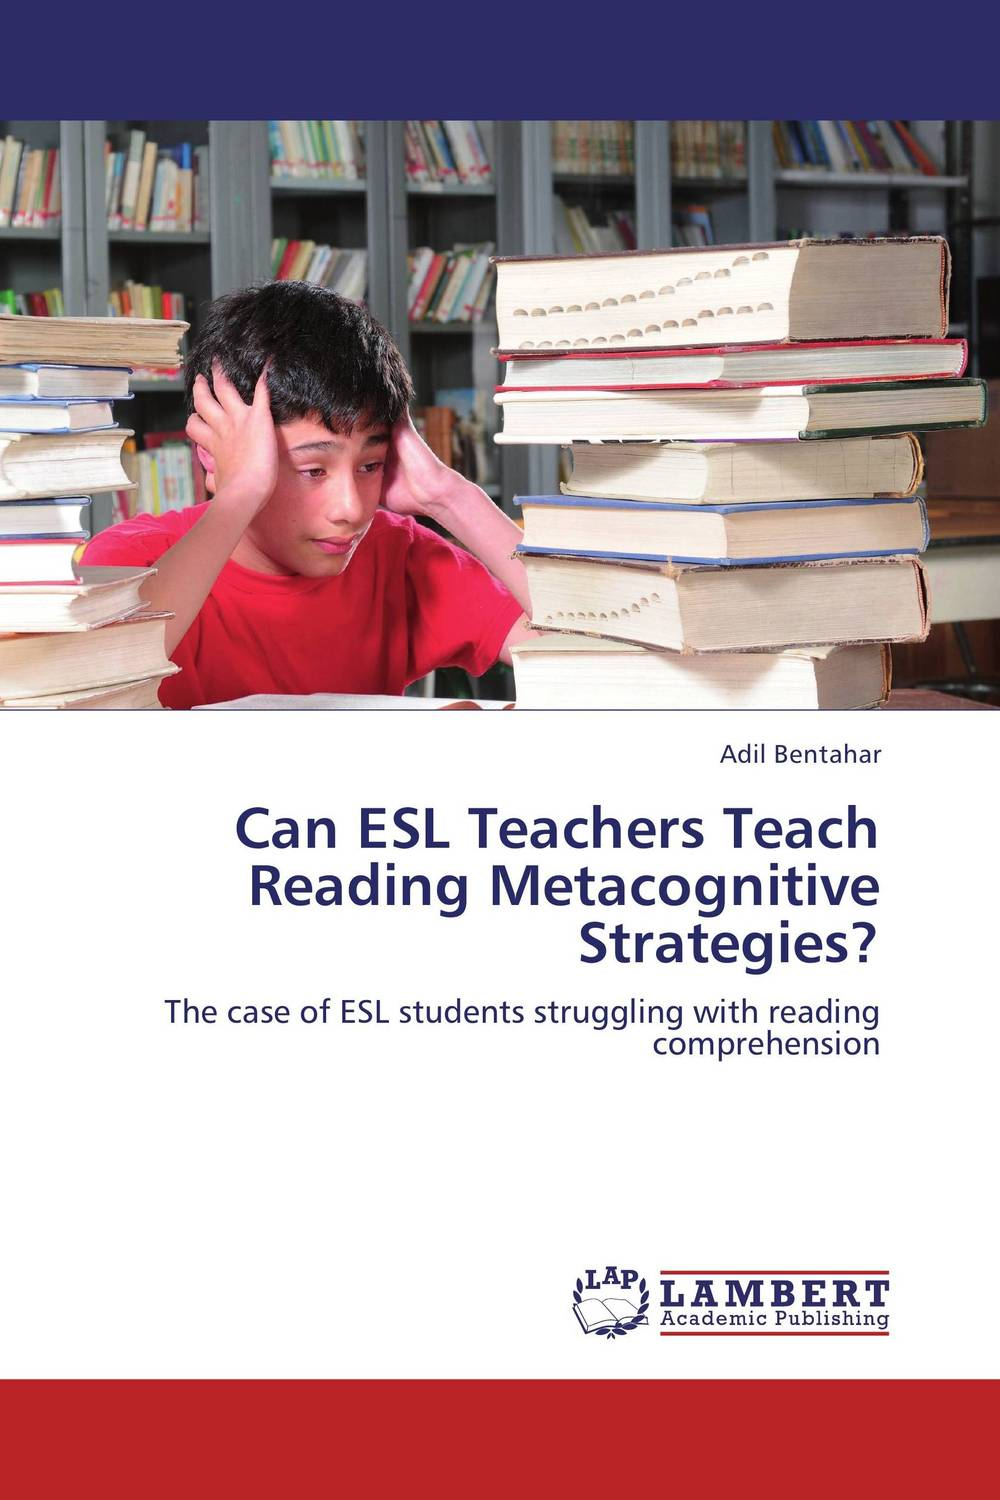 Can ESL Teachers Teach Reading Metacognitive Strategies? reading strategies in spanish and english a case study